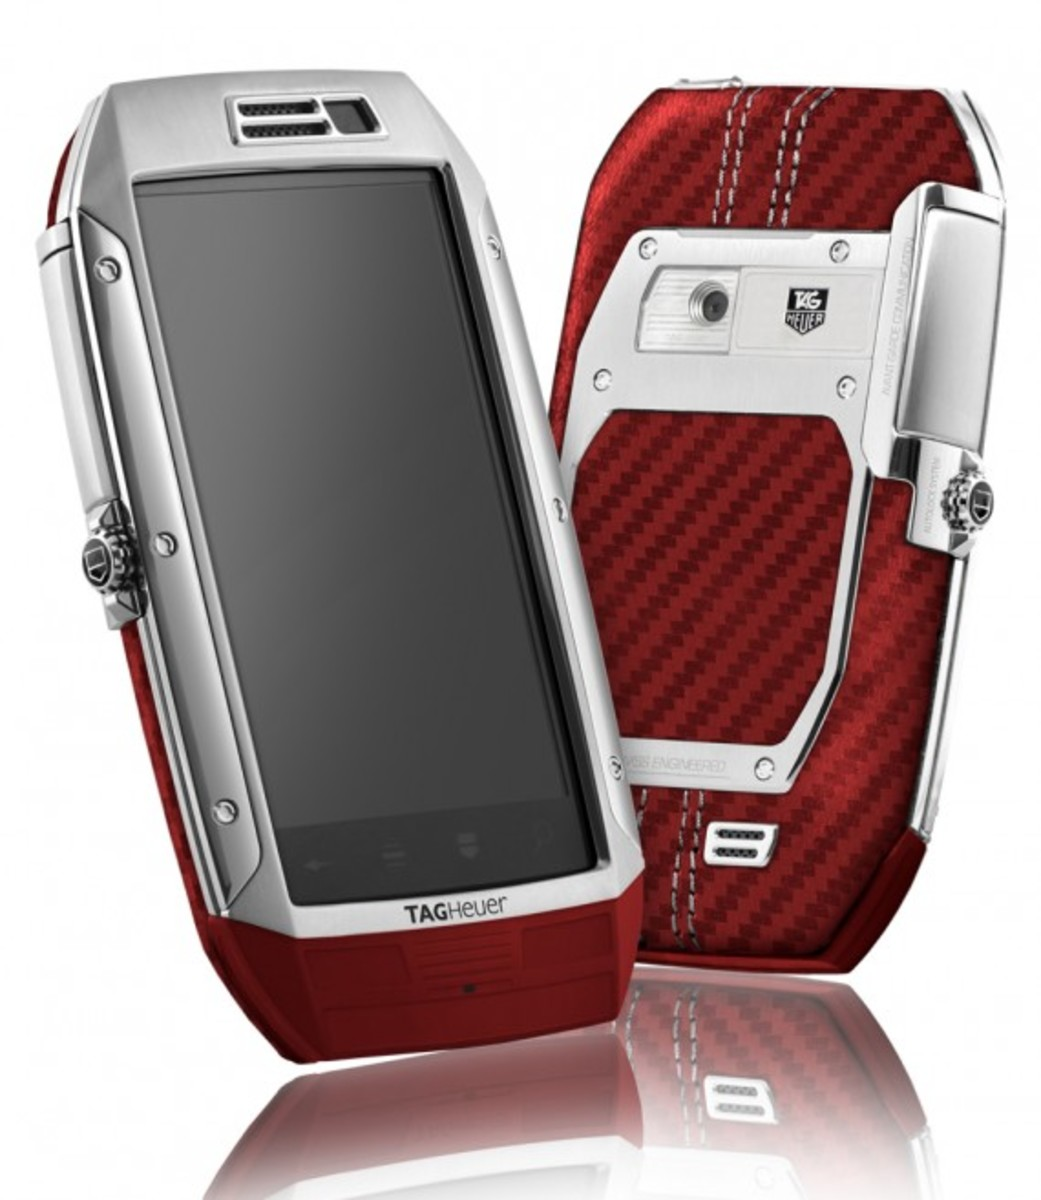 tag-heuer-link-mobile-phone-01